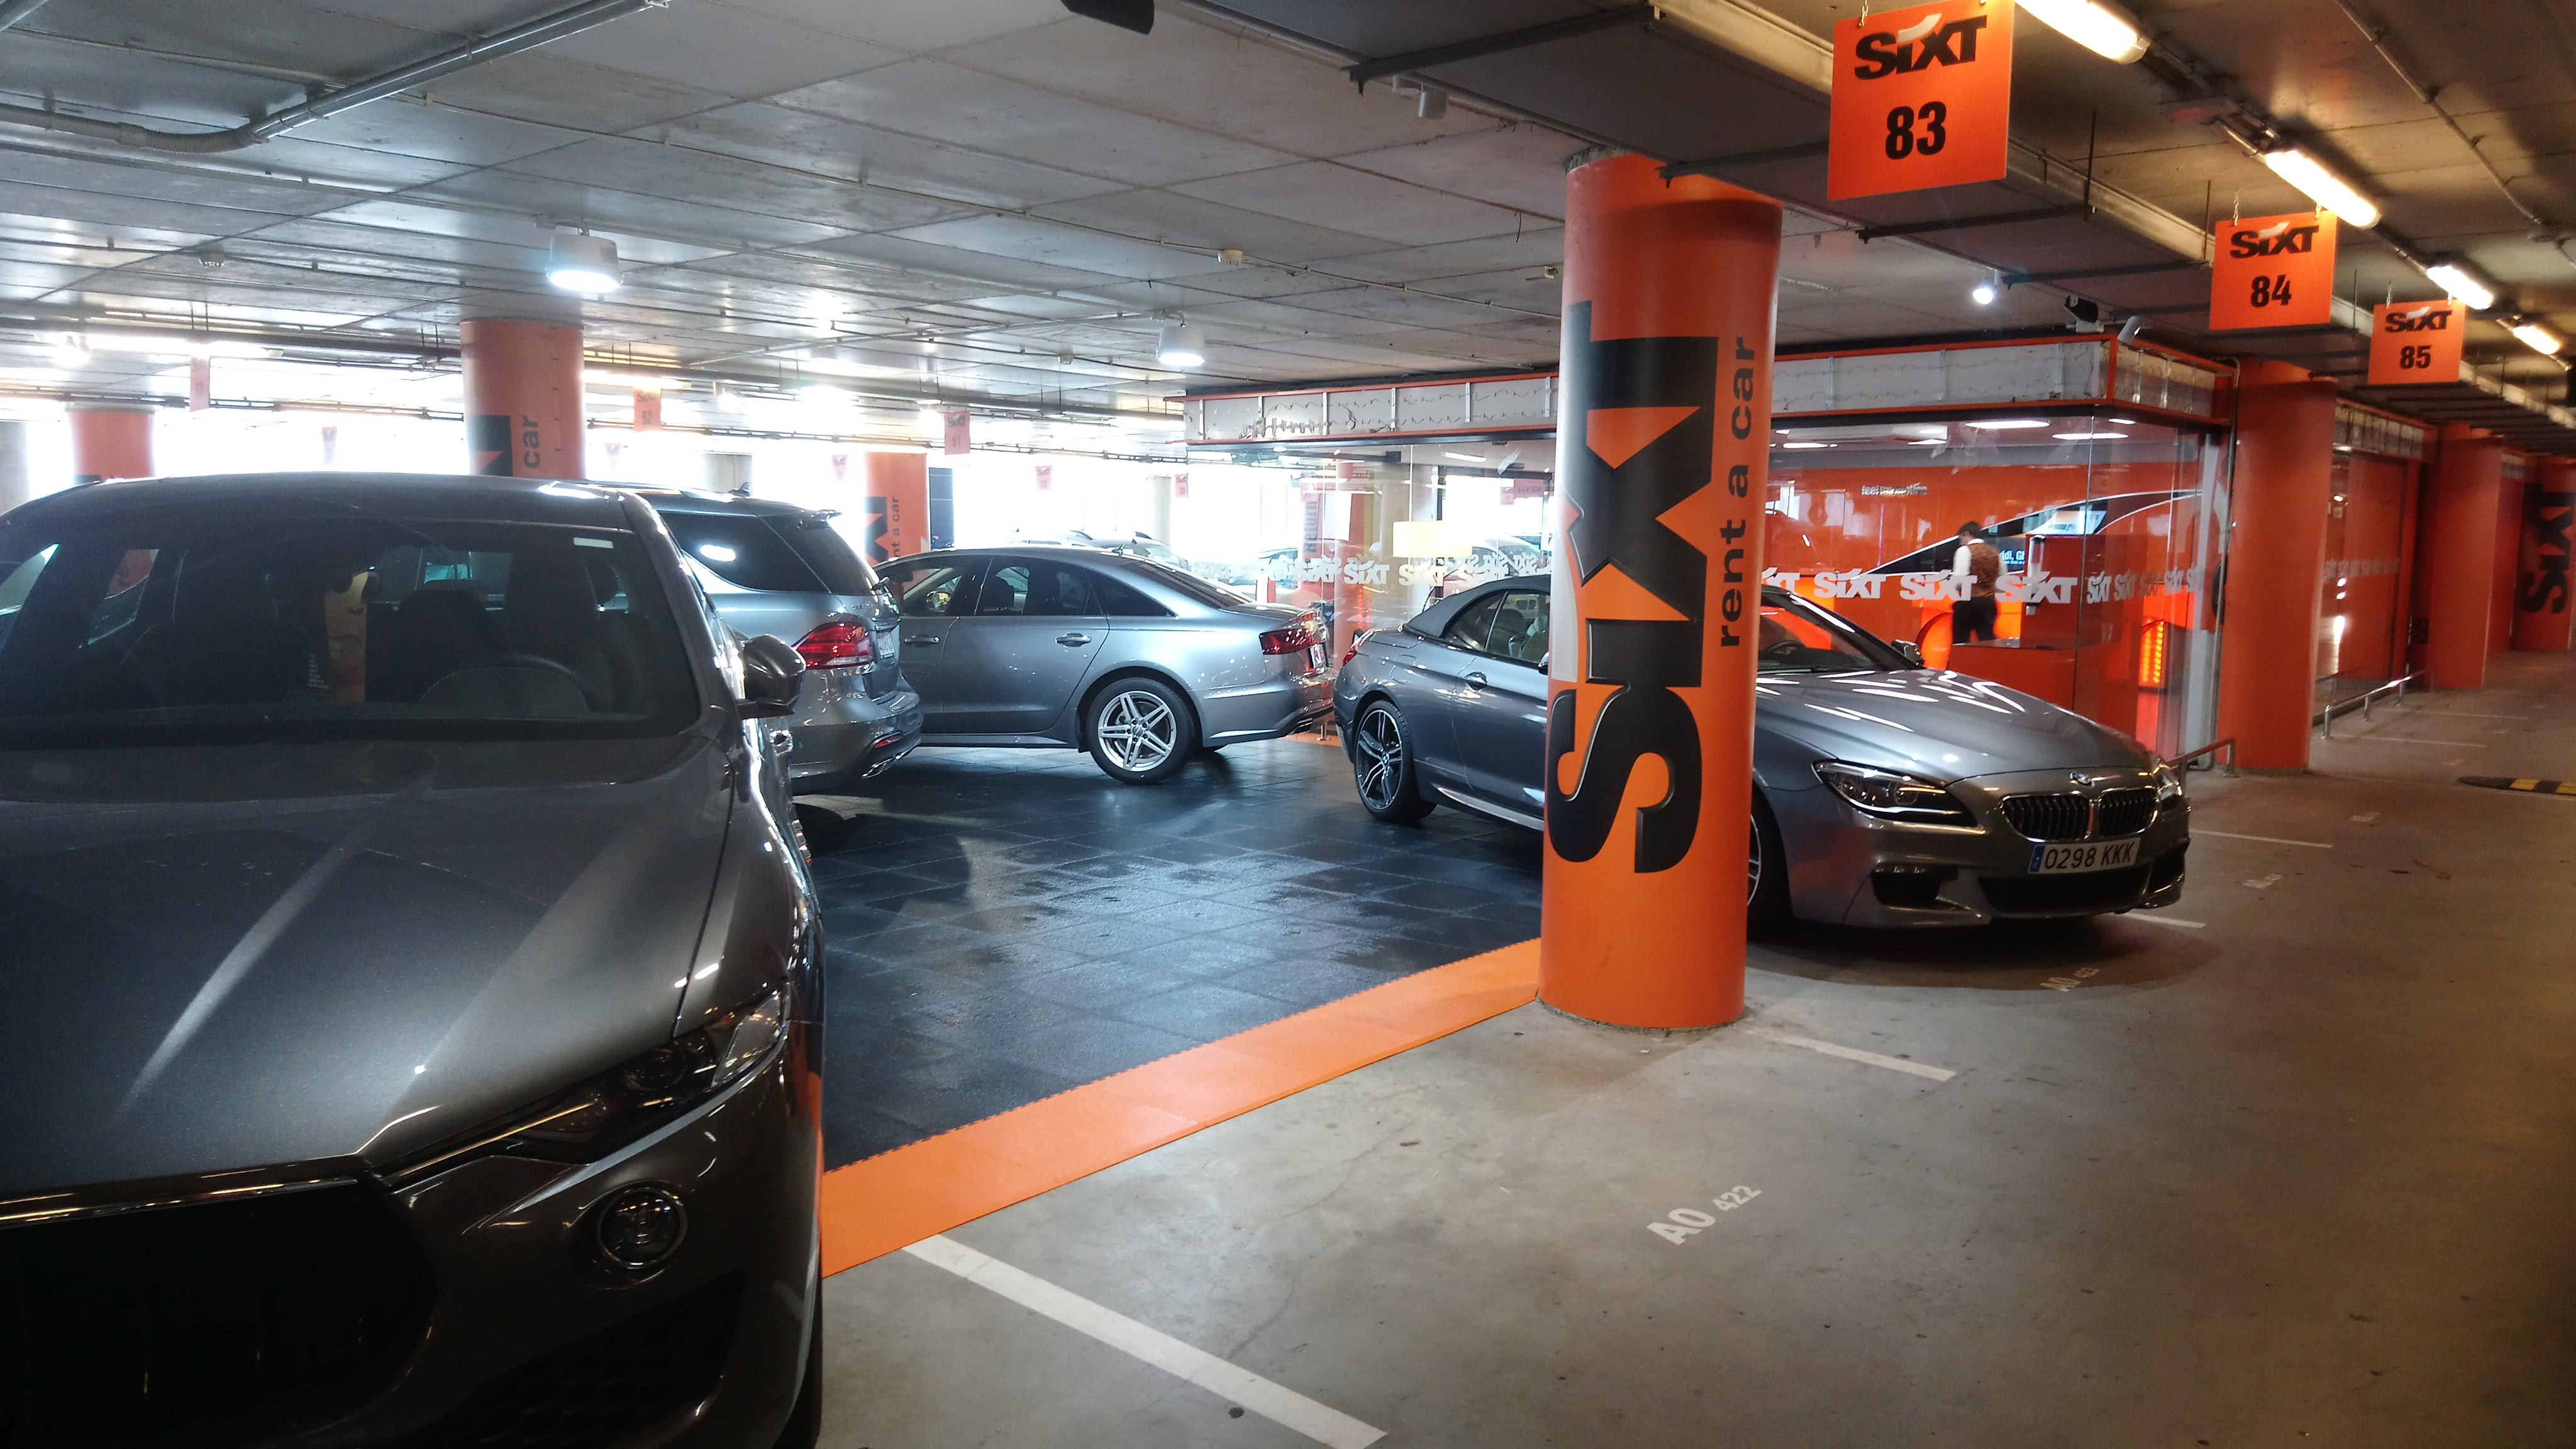 sixt t1 parking reforma 3